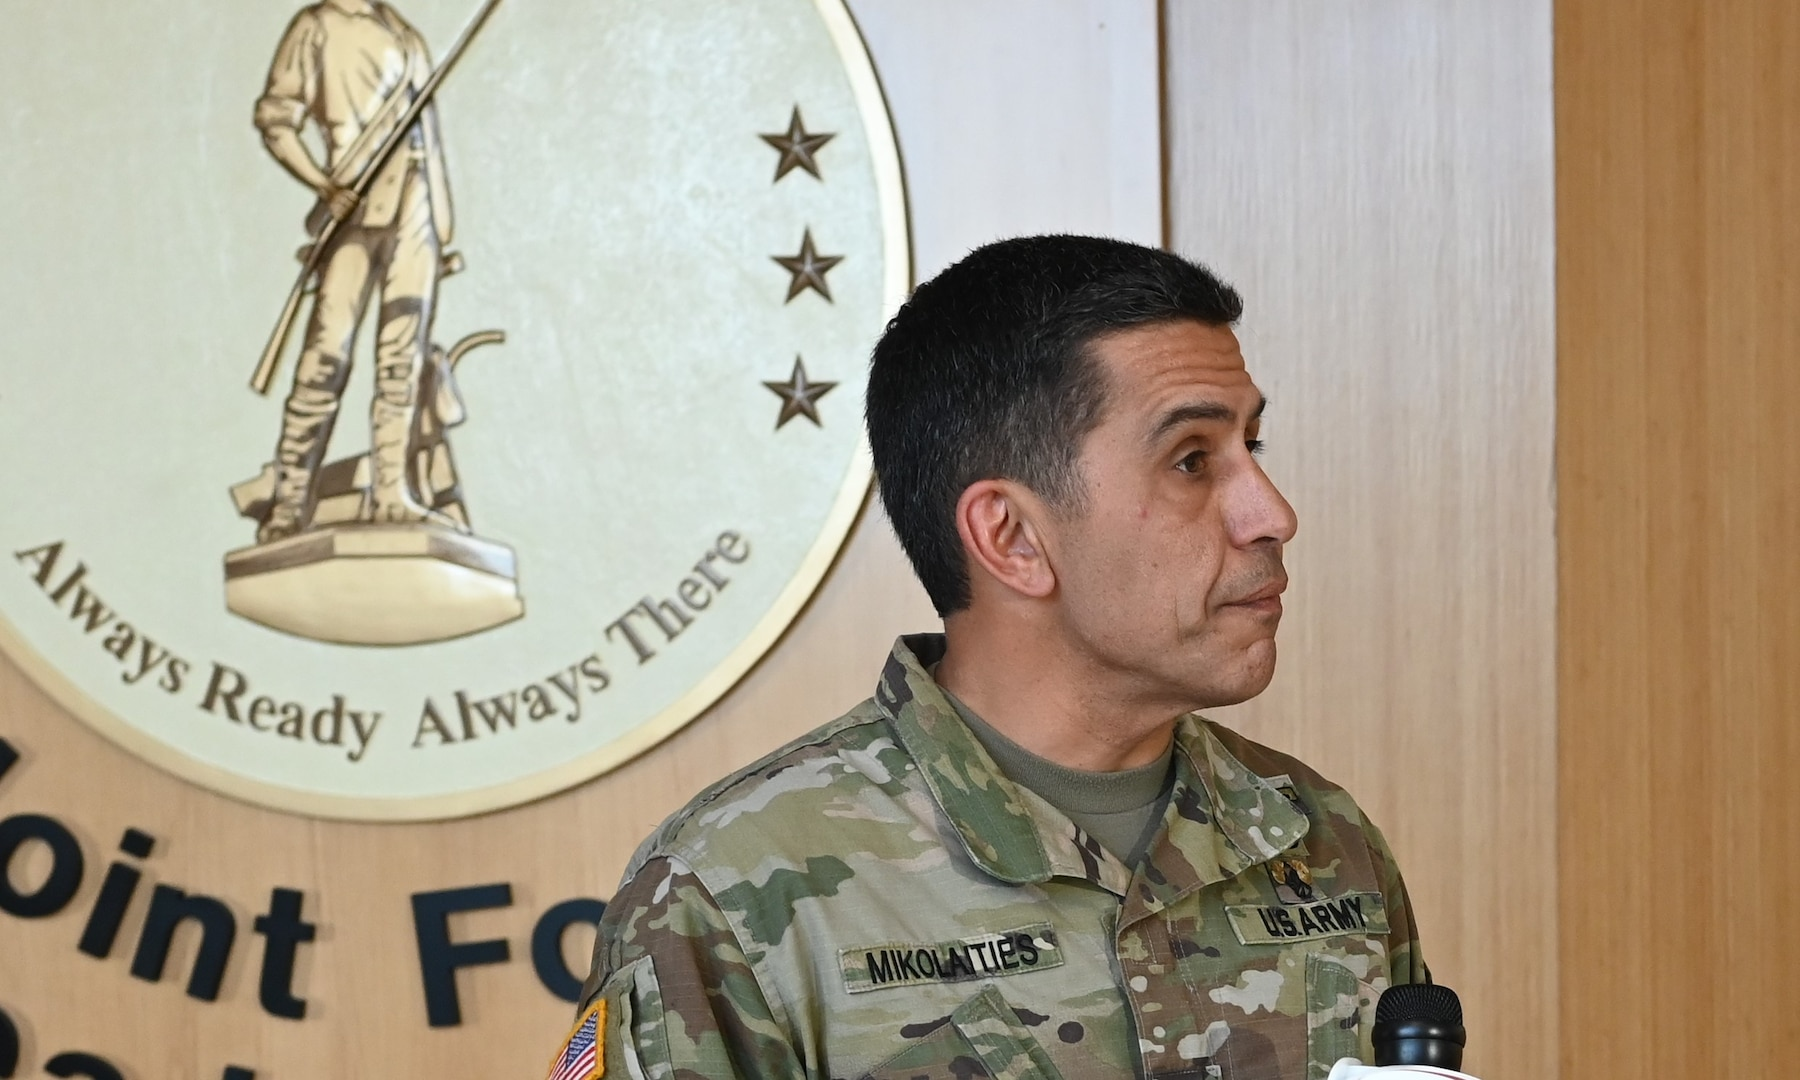 Maj. Gen. David Mikolaities, adjutant general, New Hampshire National Guard, addresses the ongoing COVID-19 crisis, March 31, 2020.